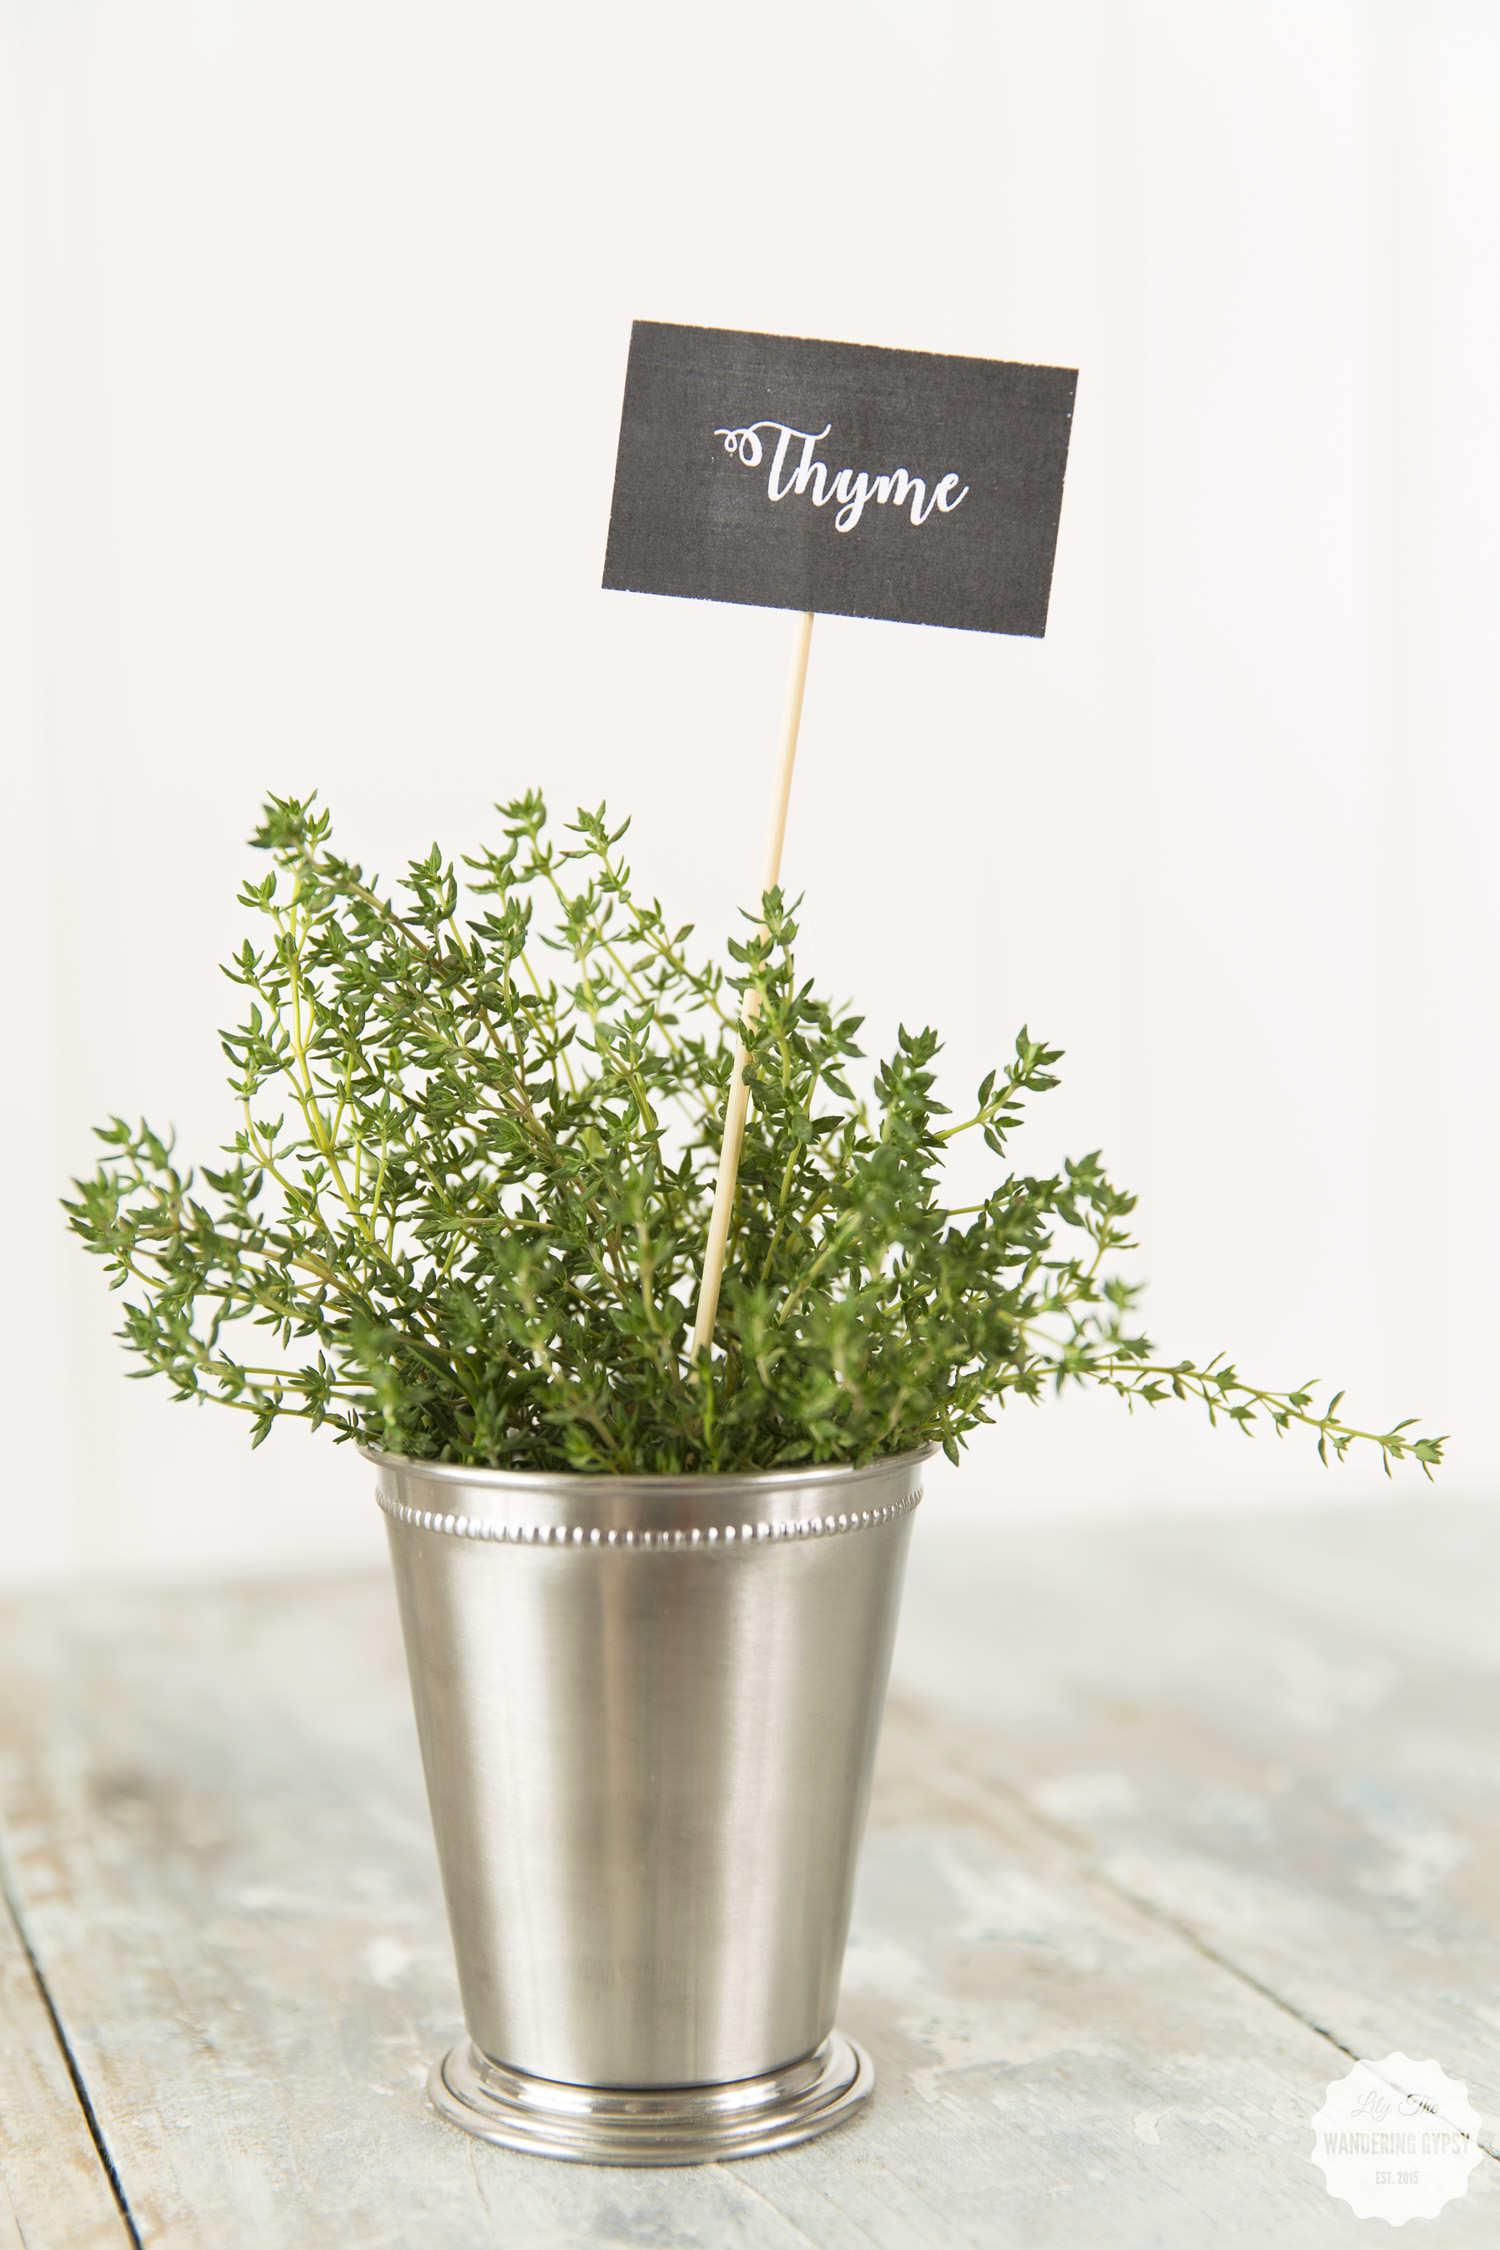 #WhatInconvenience - Food Photography Party Ideas, thyme in a cute container